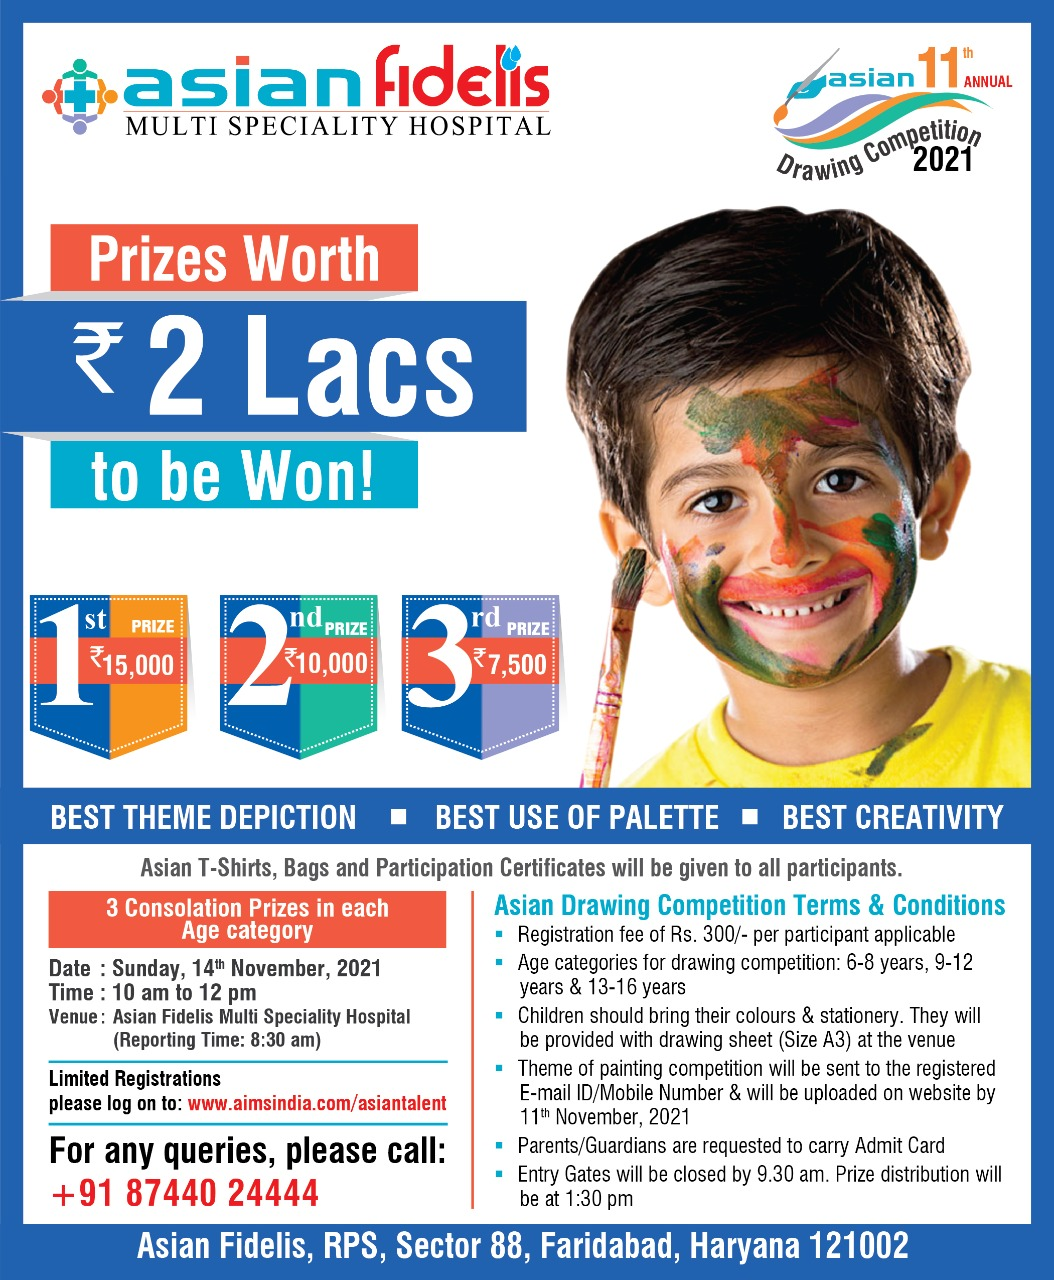 Prize Worth 2 Lacs to be Won